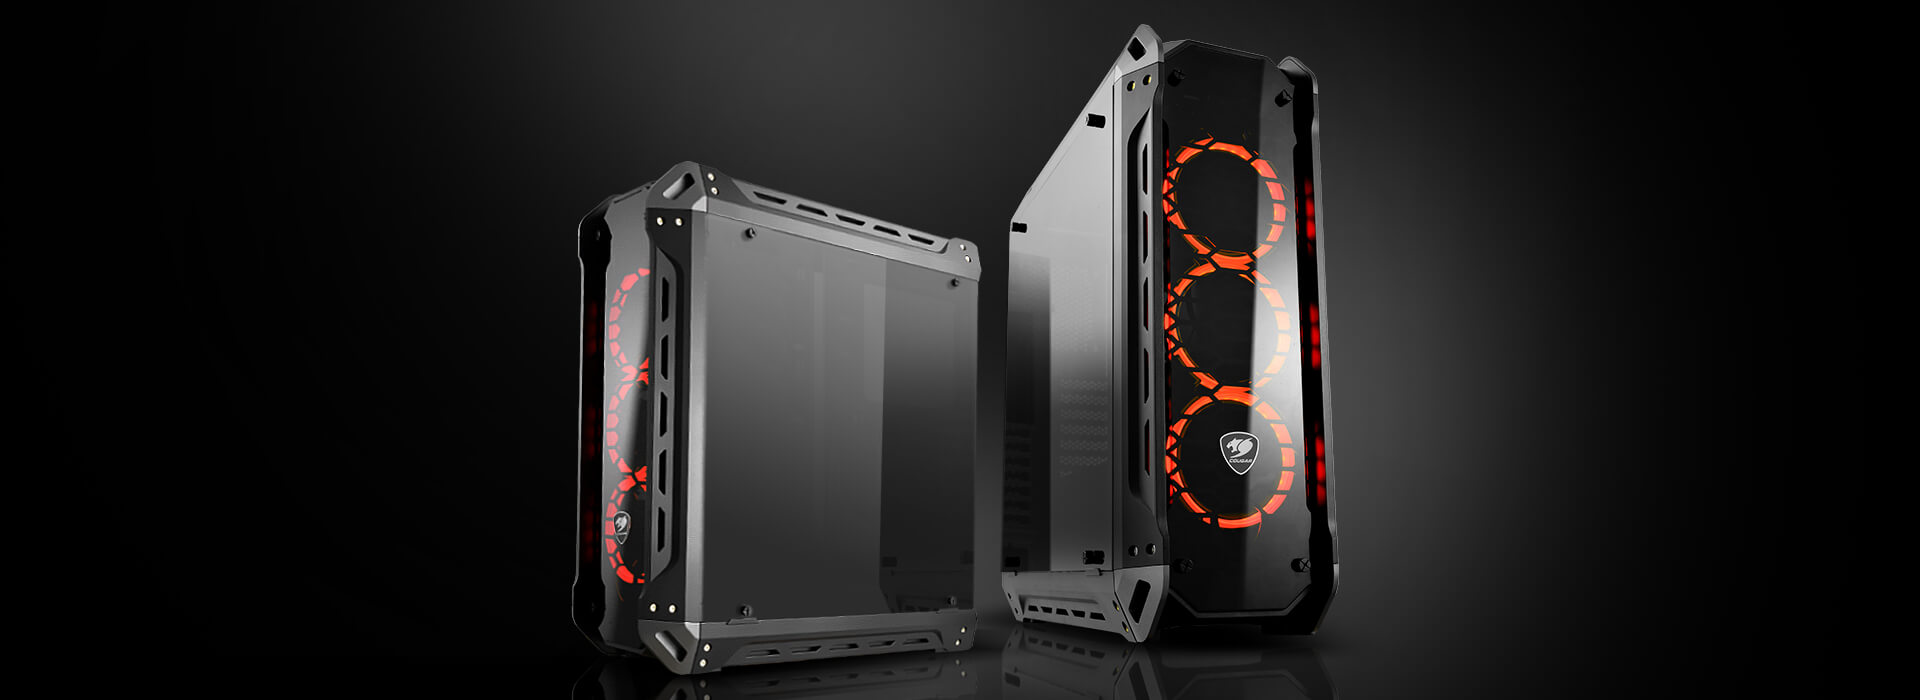 COUGAR PANZER-G Tempered Glass Gaming Mid-Tower PC Case